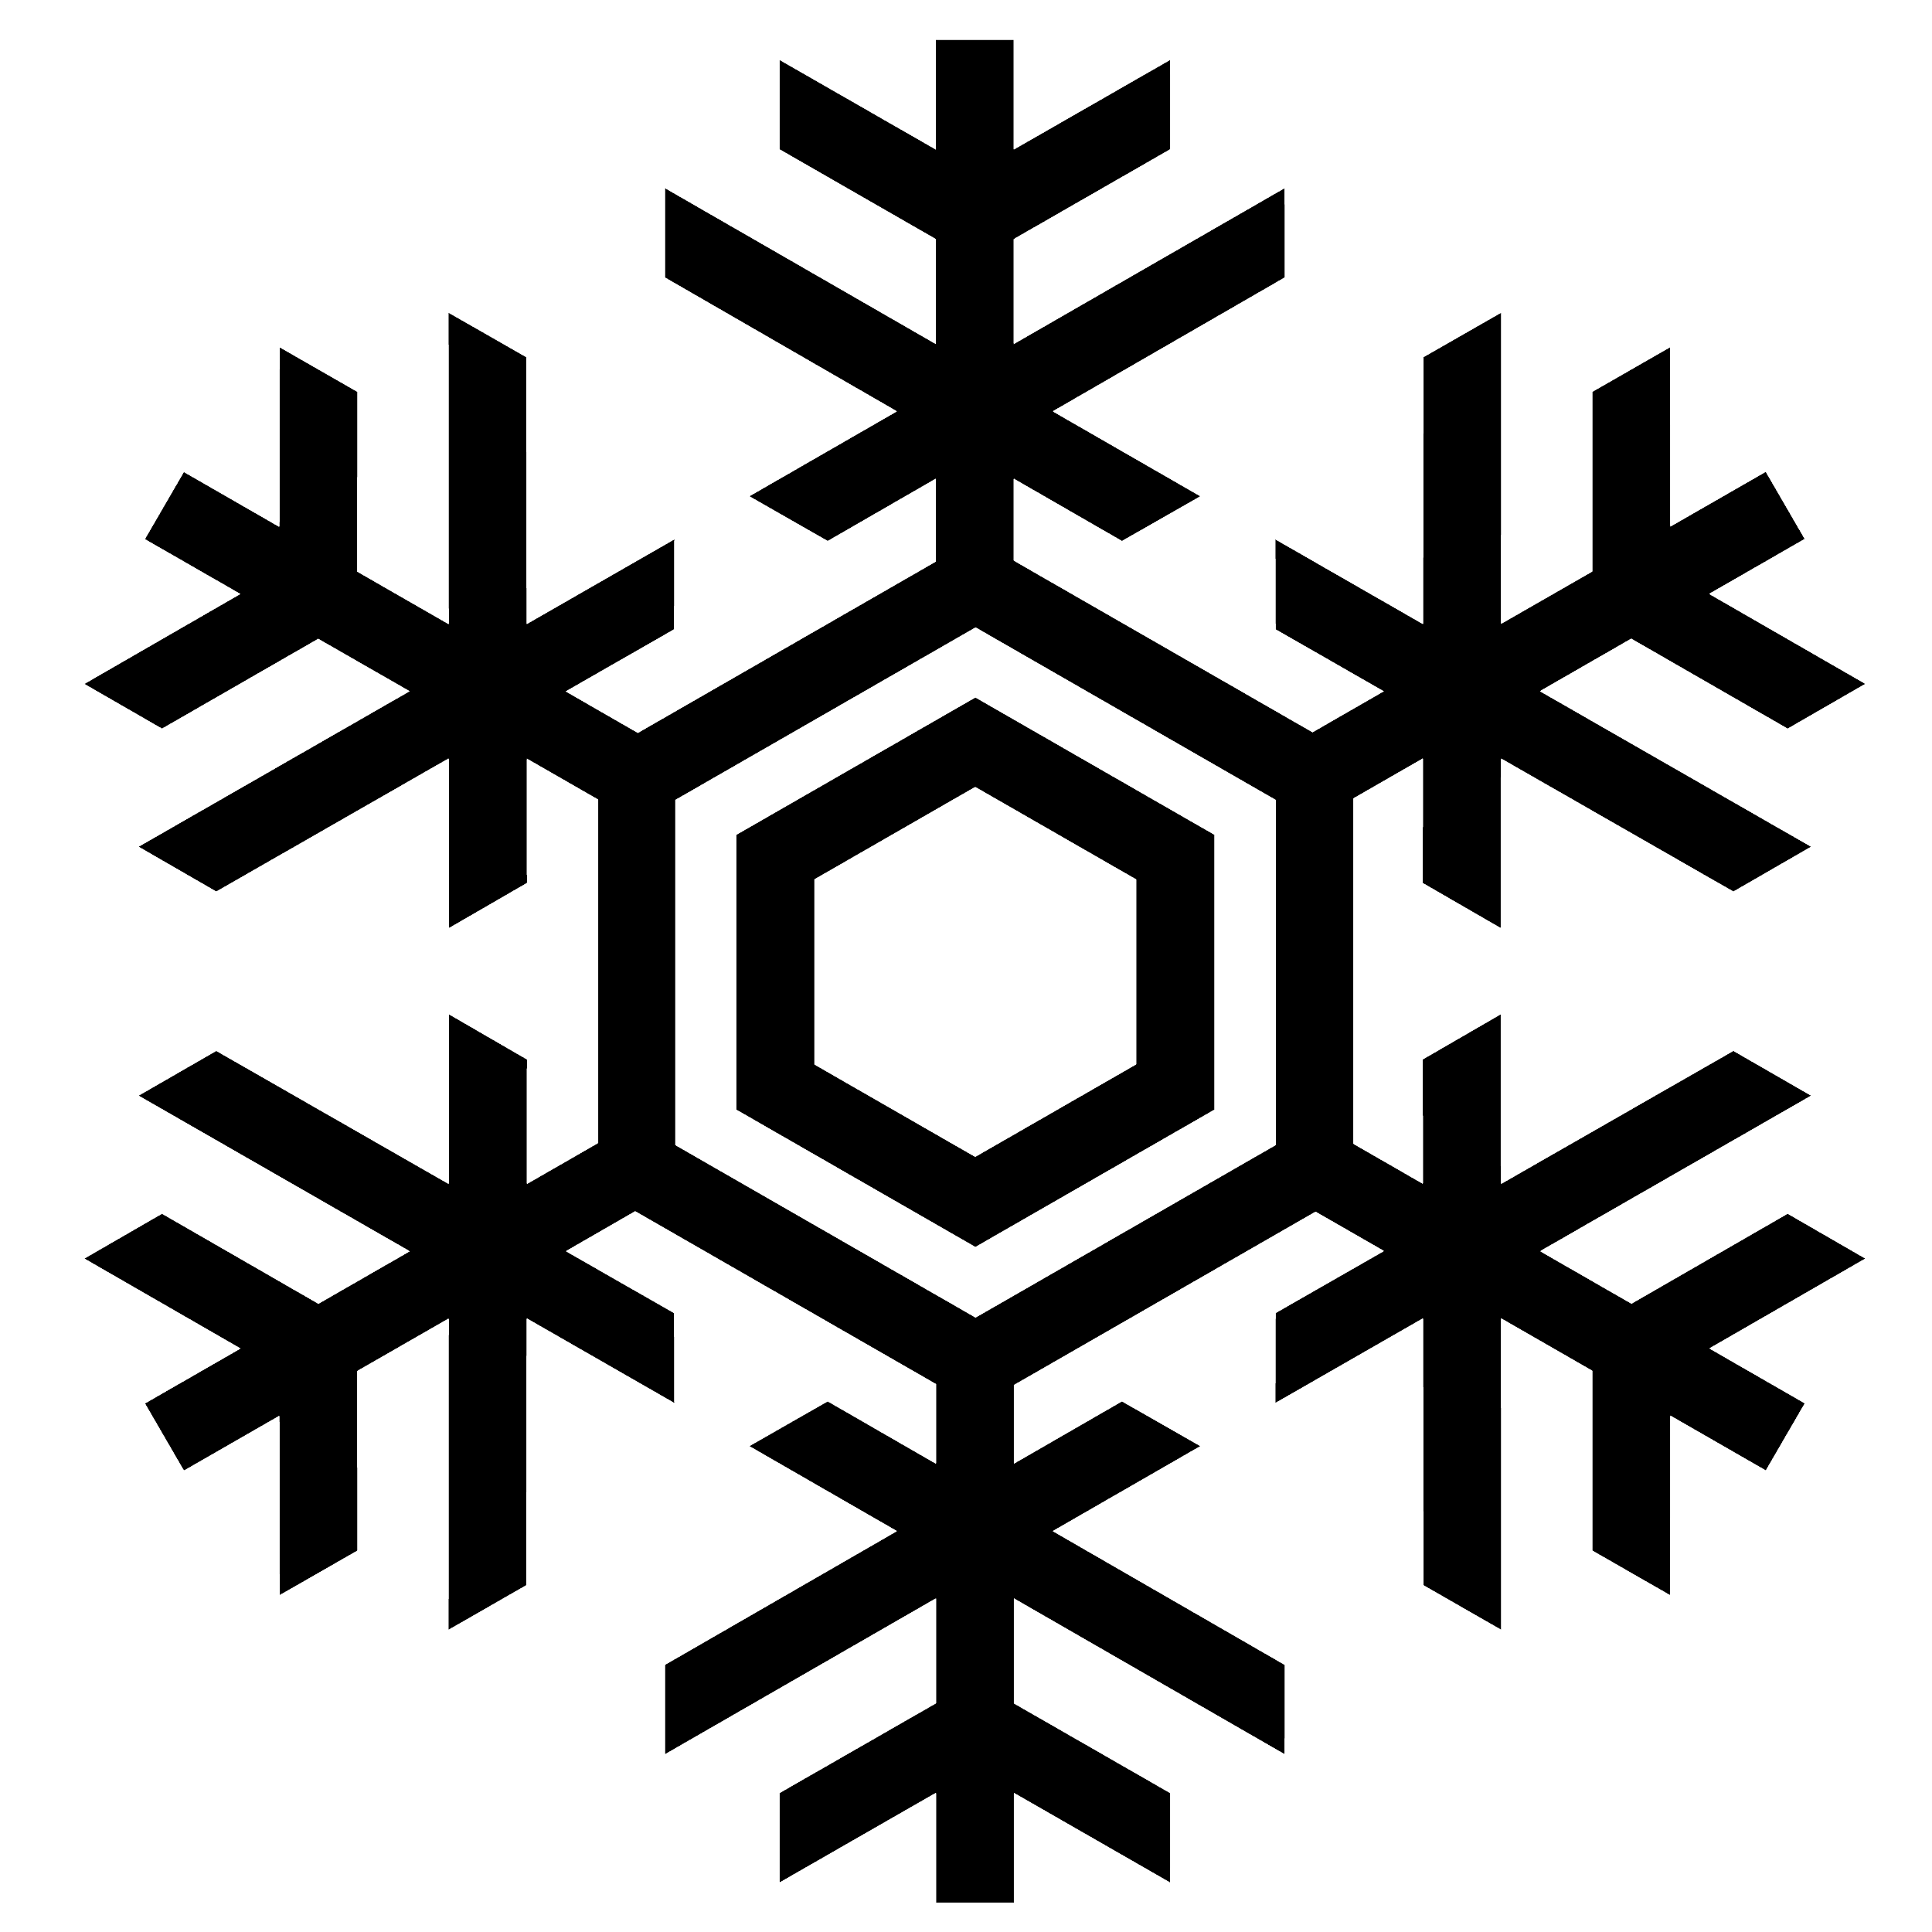 Eight section snowflake clipart svg black and white download Snowflake silhouette PNG image svg black and white download